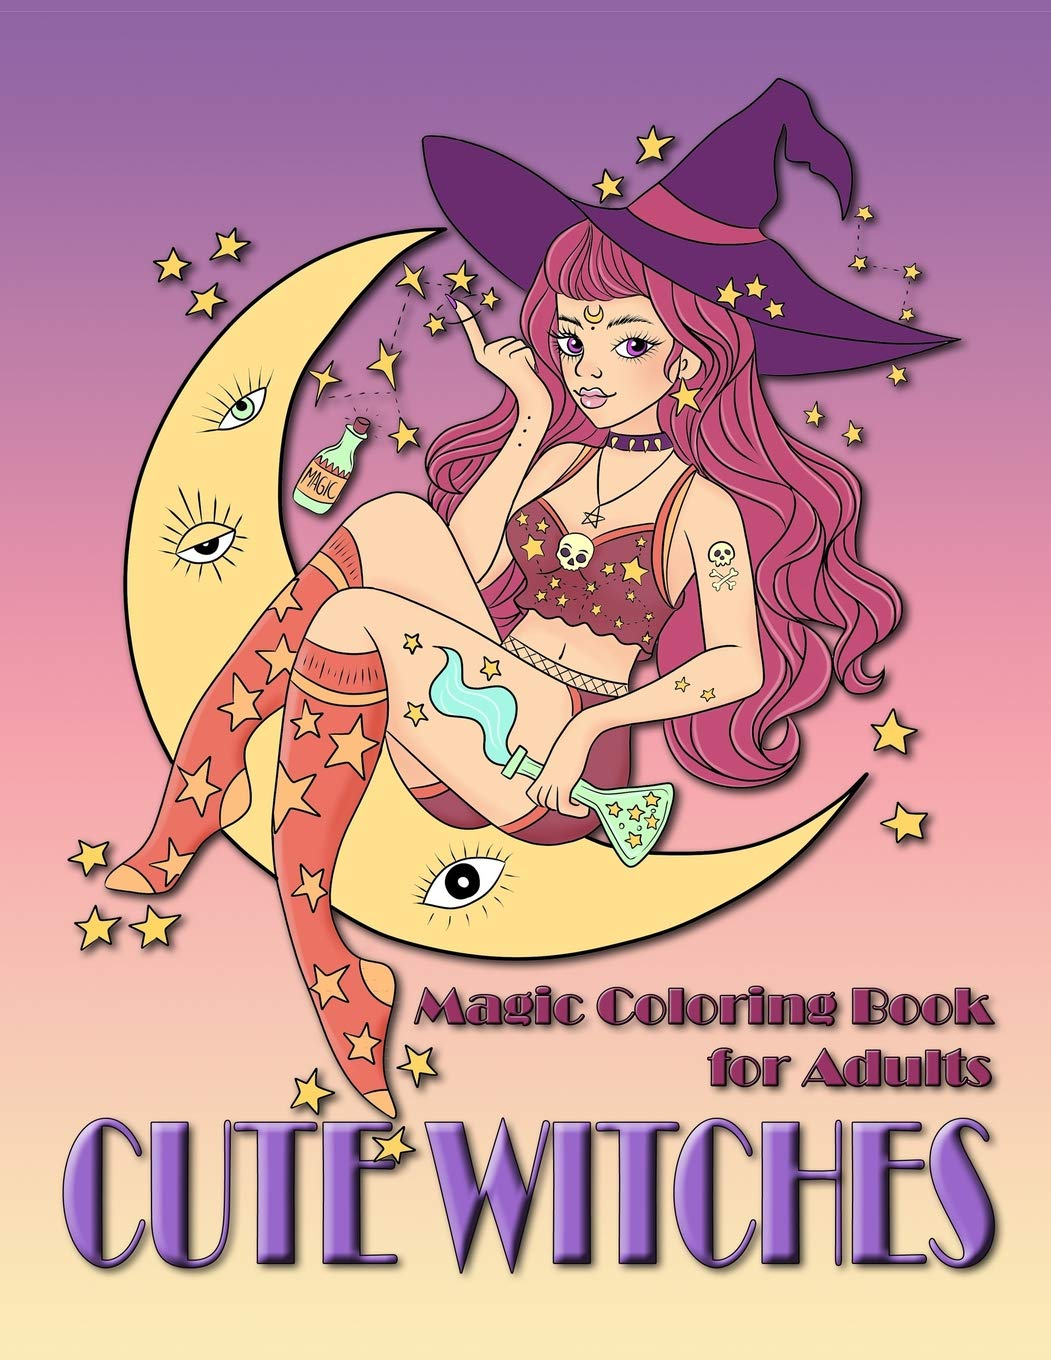 Amazon.com: Cute Witches: Magic Coloring Book for Adults ...